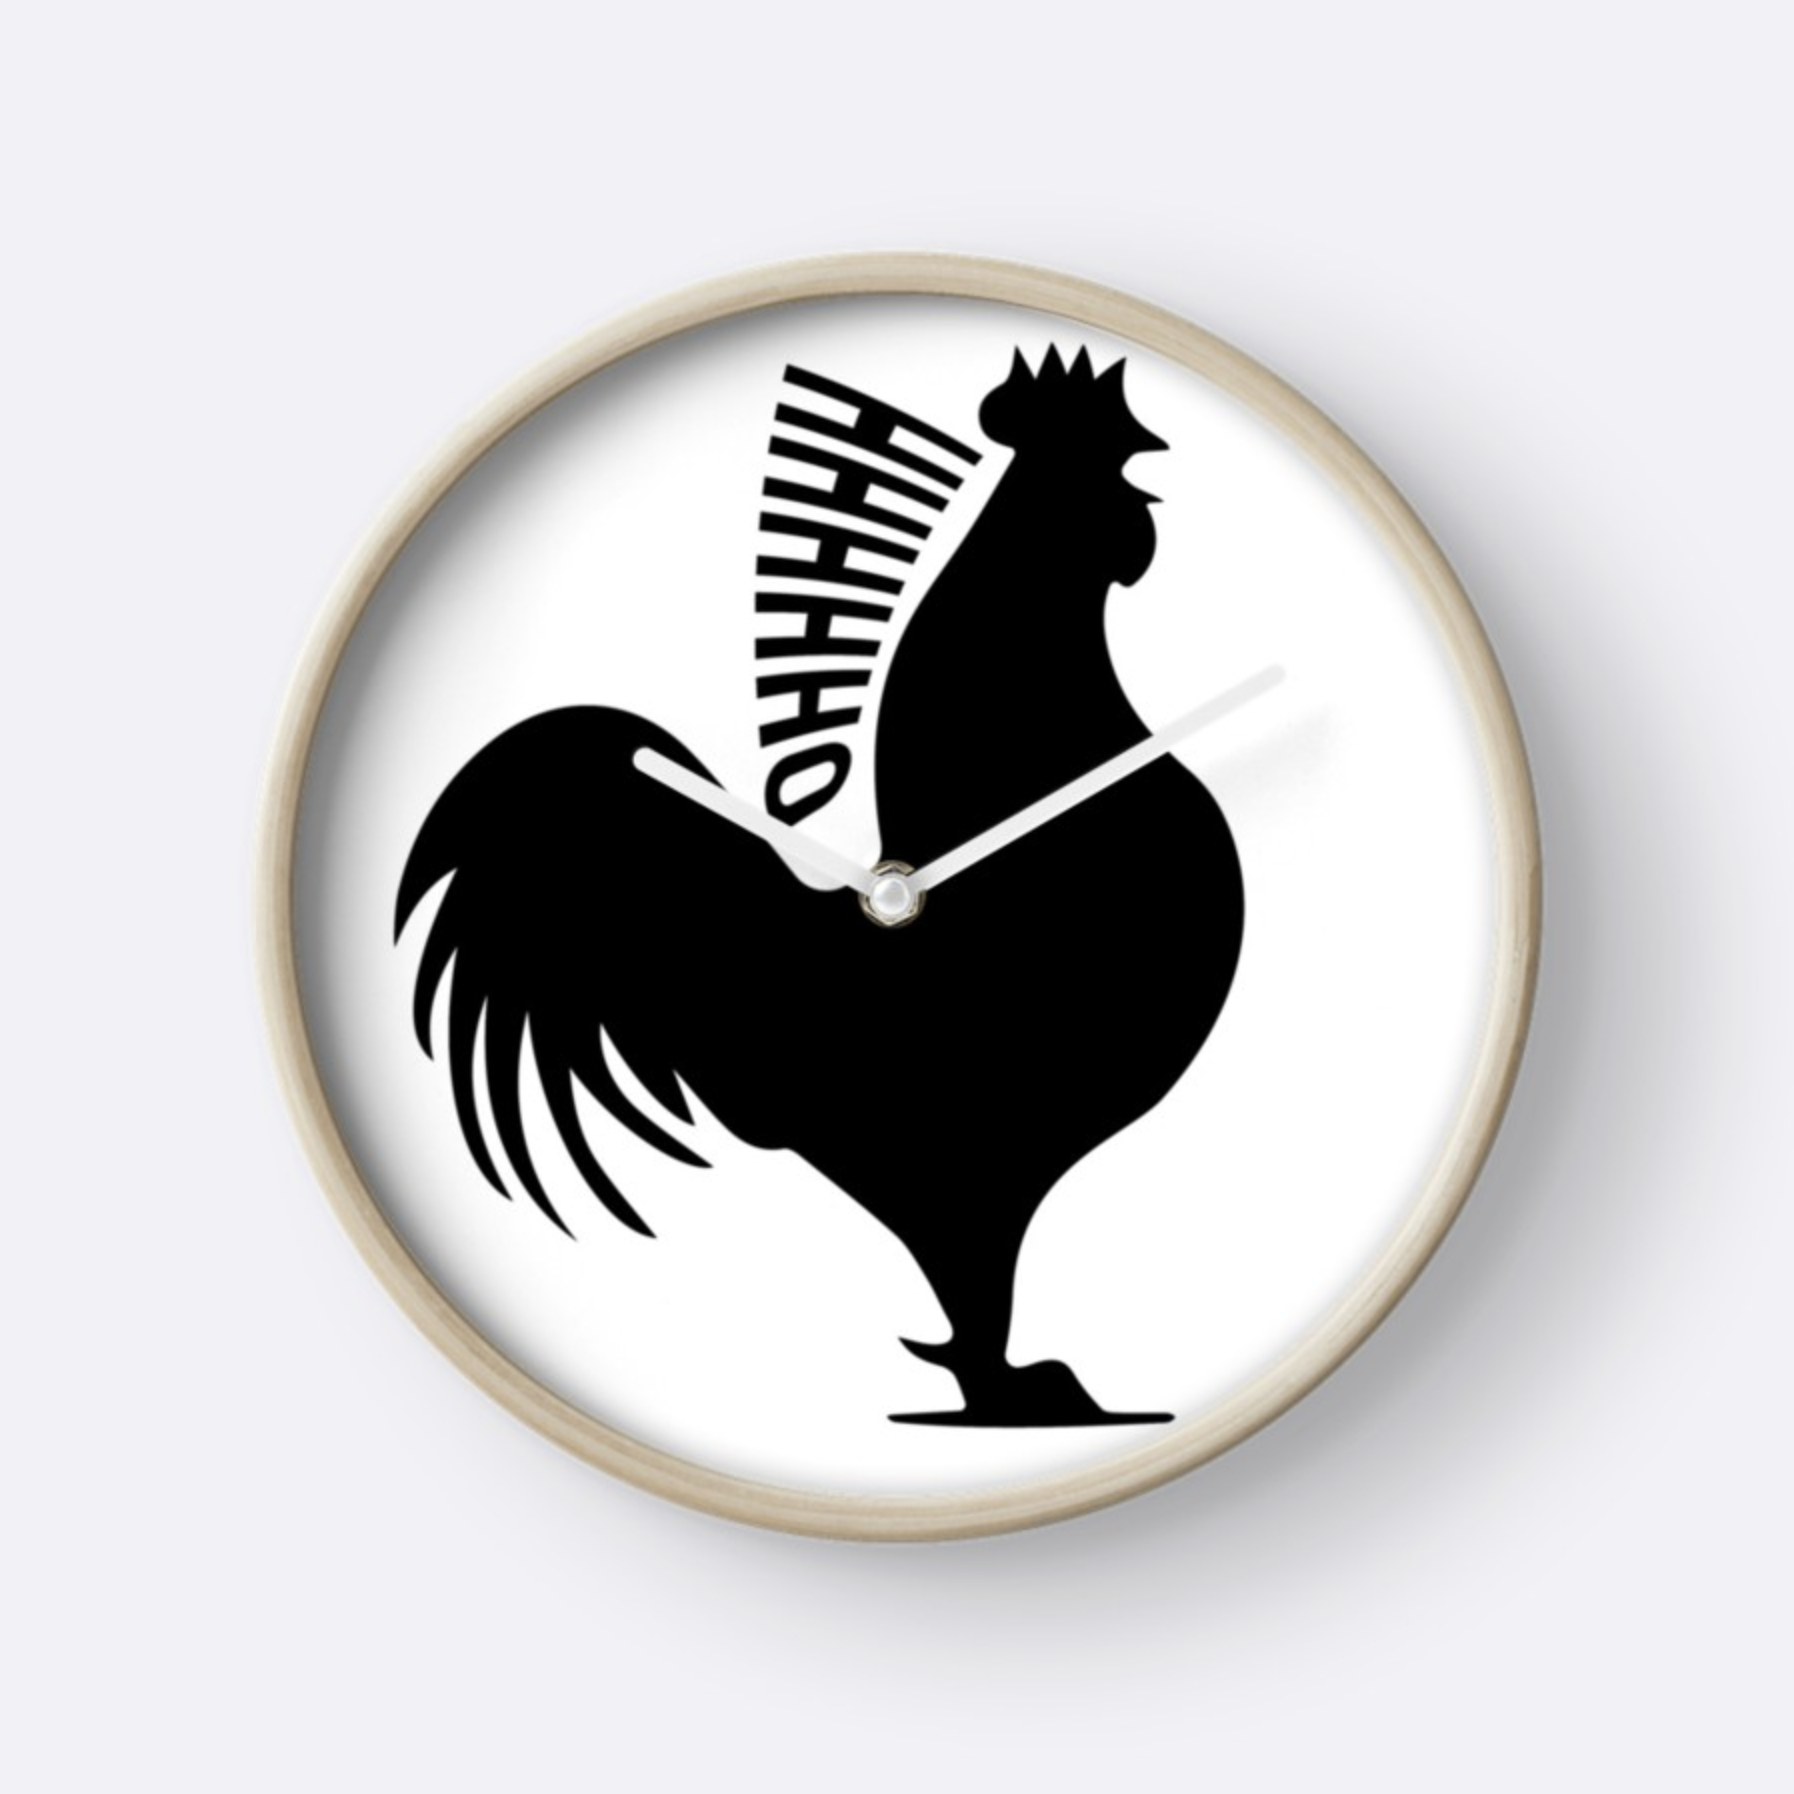 The Oh Cock Clock